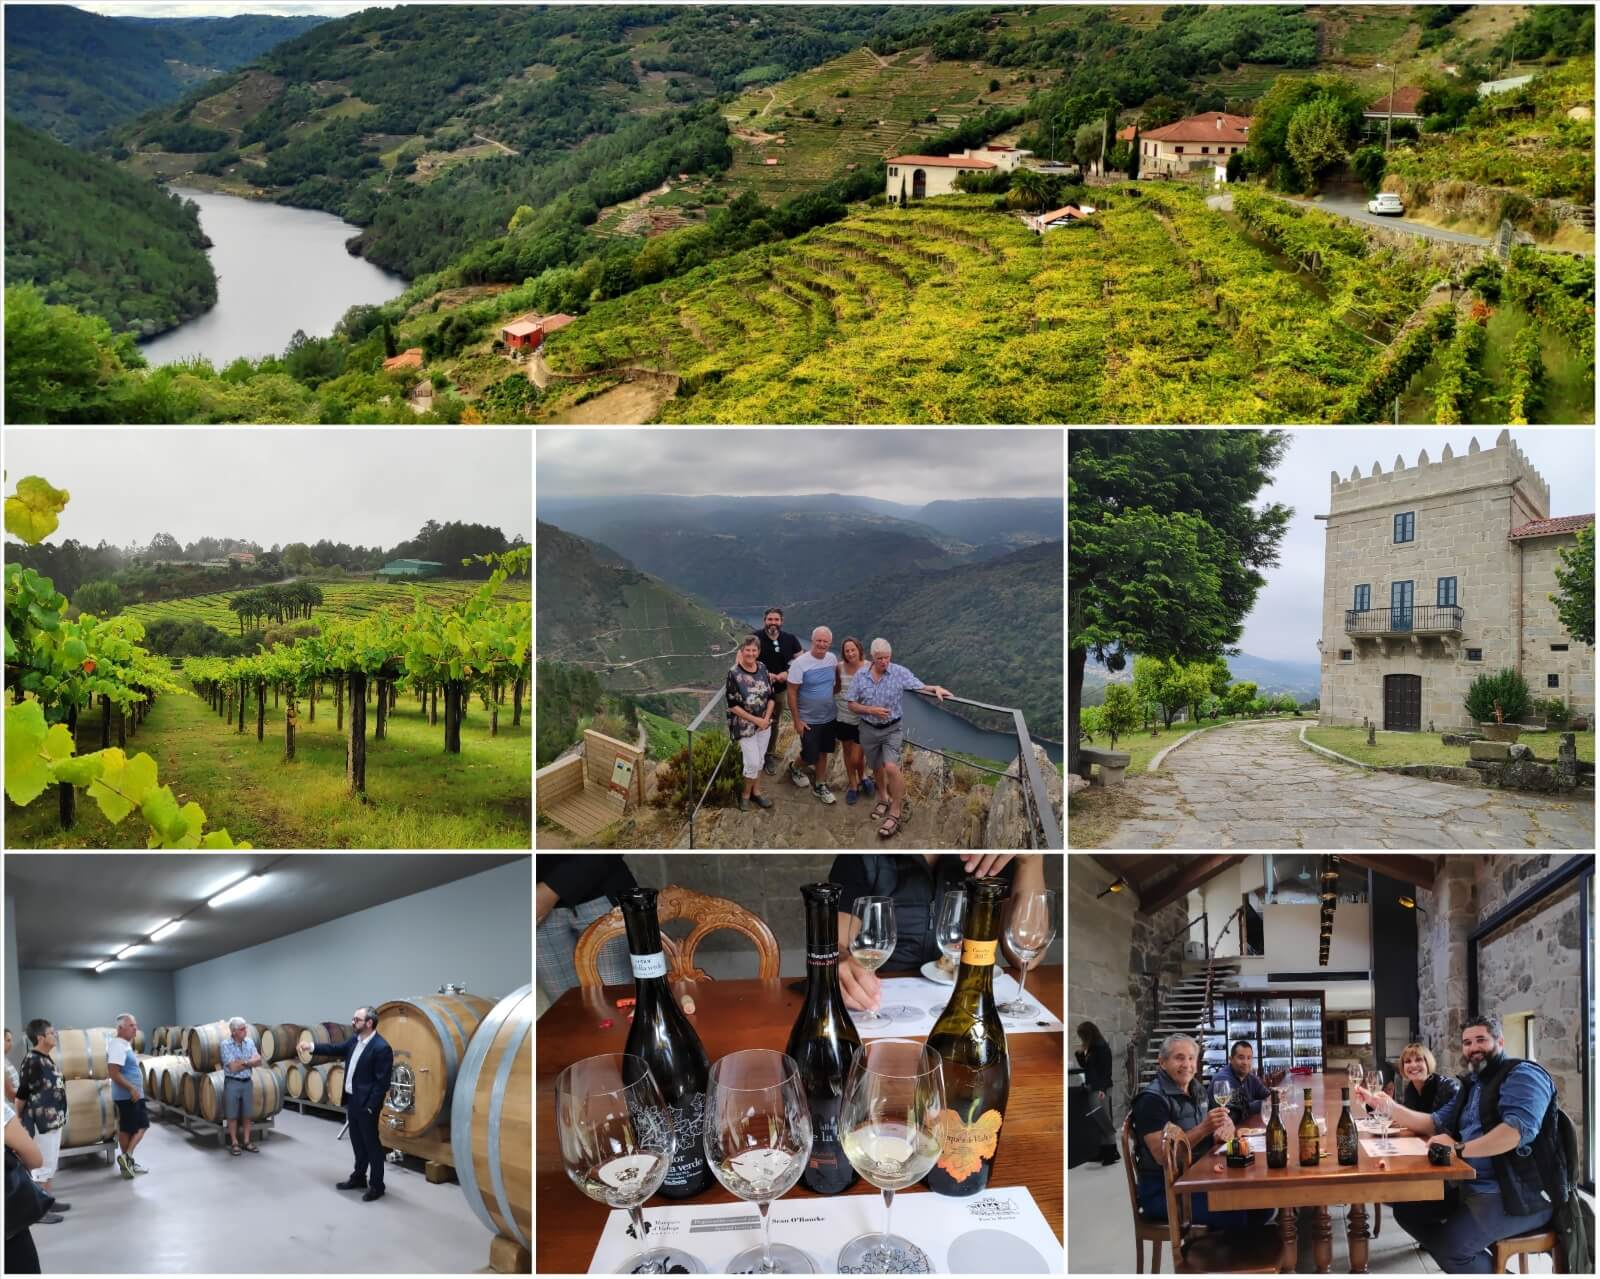 What to see and do in Northern Spain: top 6 ideas - 6. Wine tourism in Northern Spain